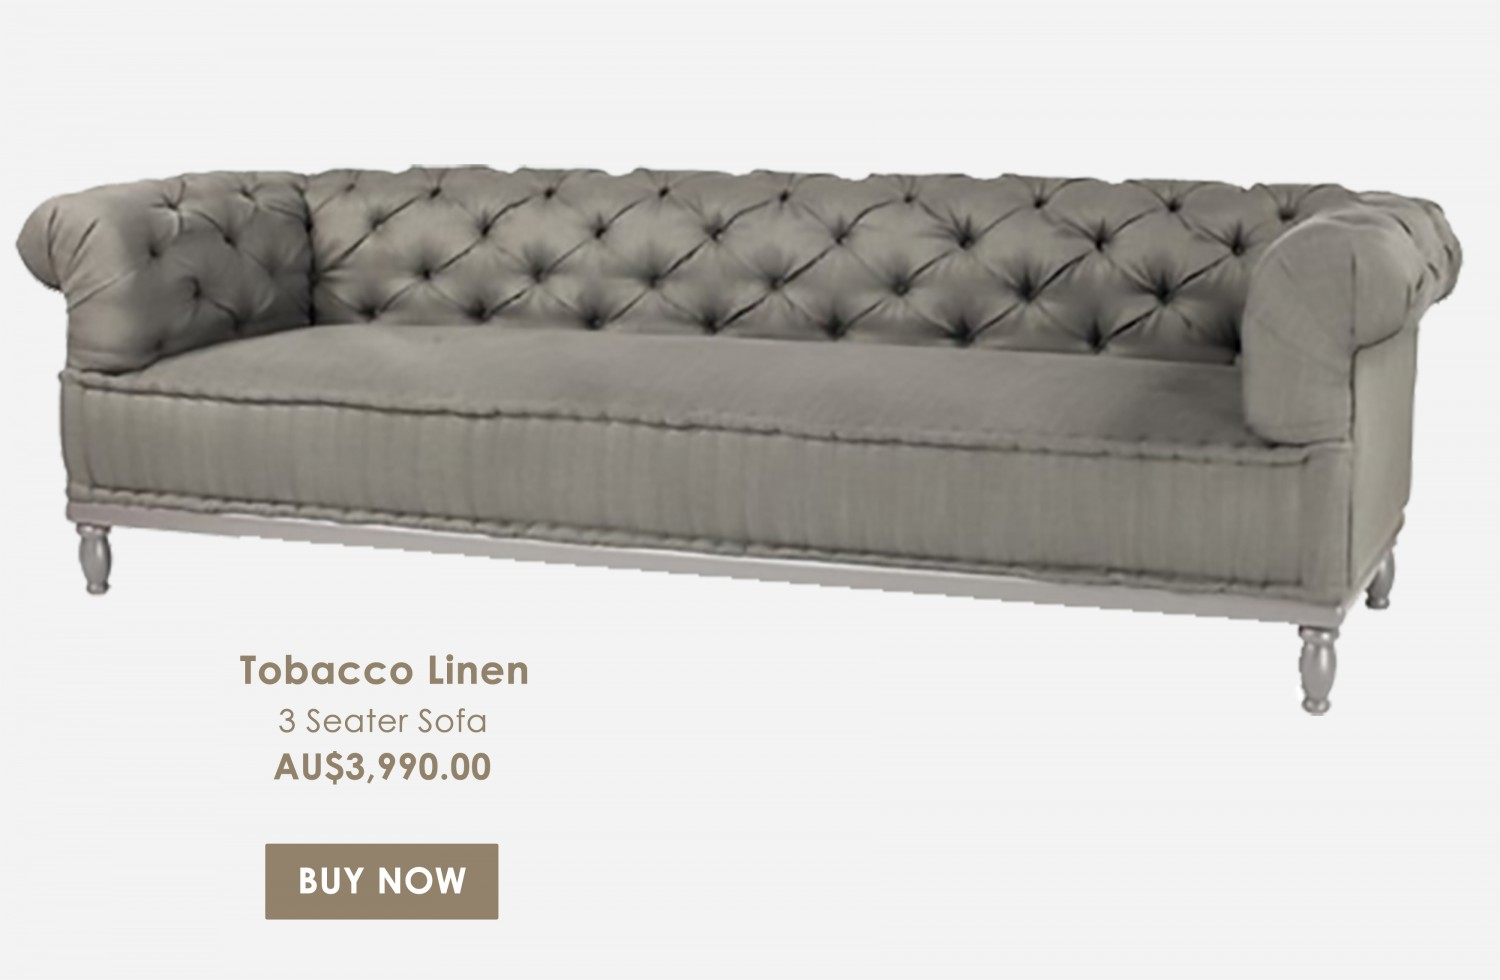 tobacco-sofa